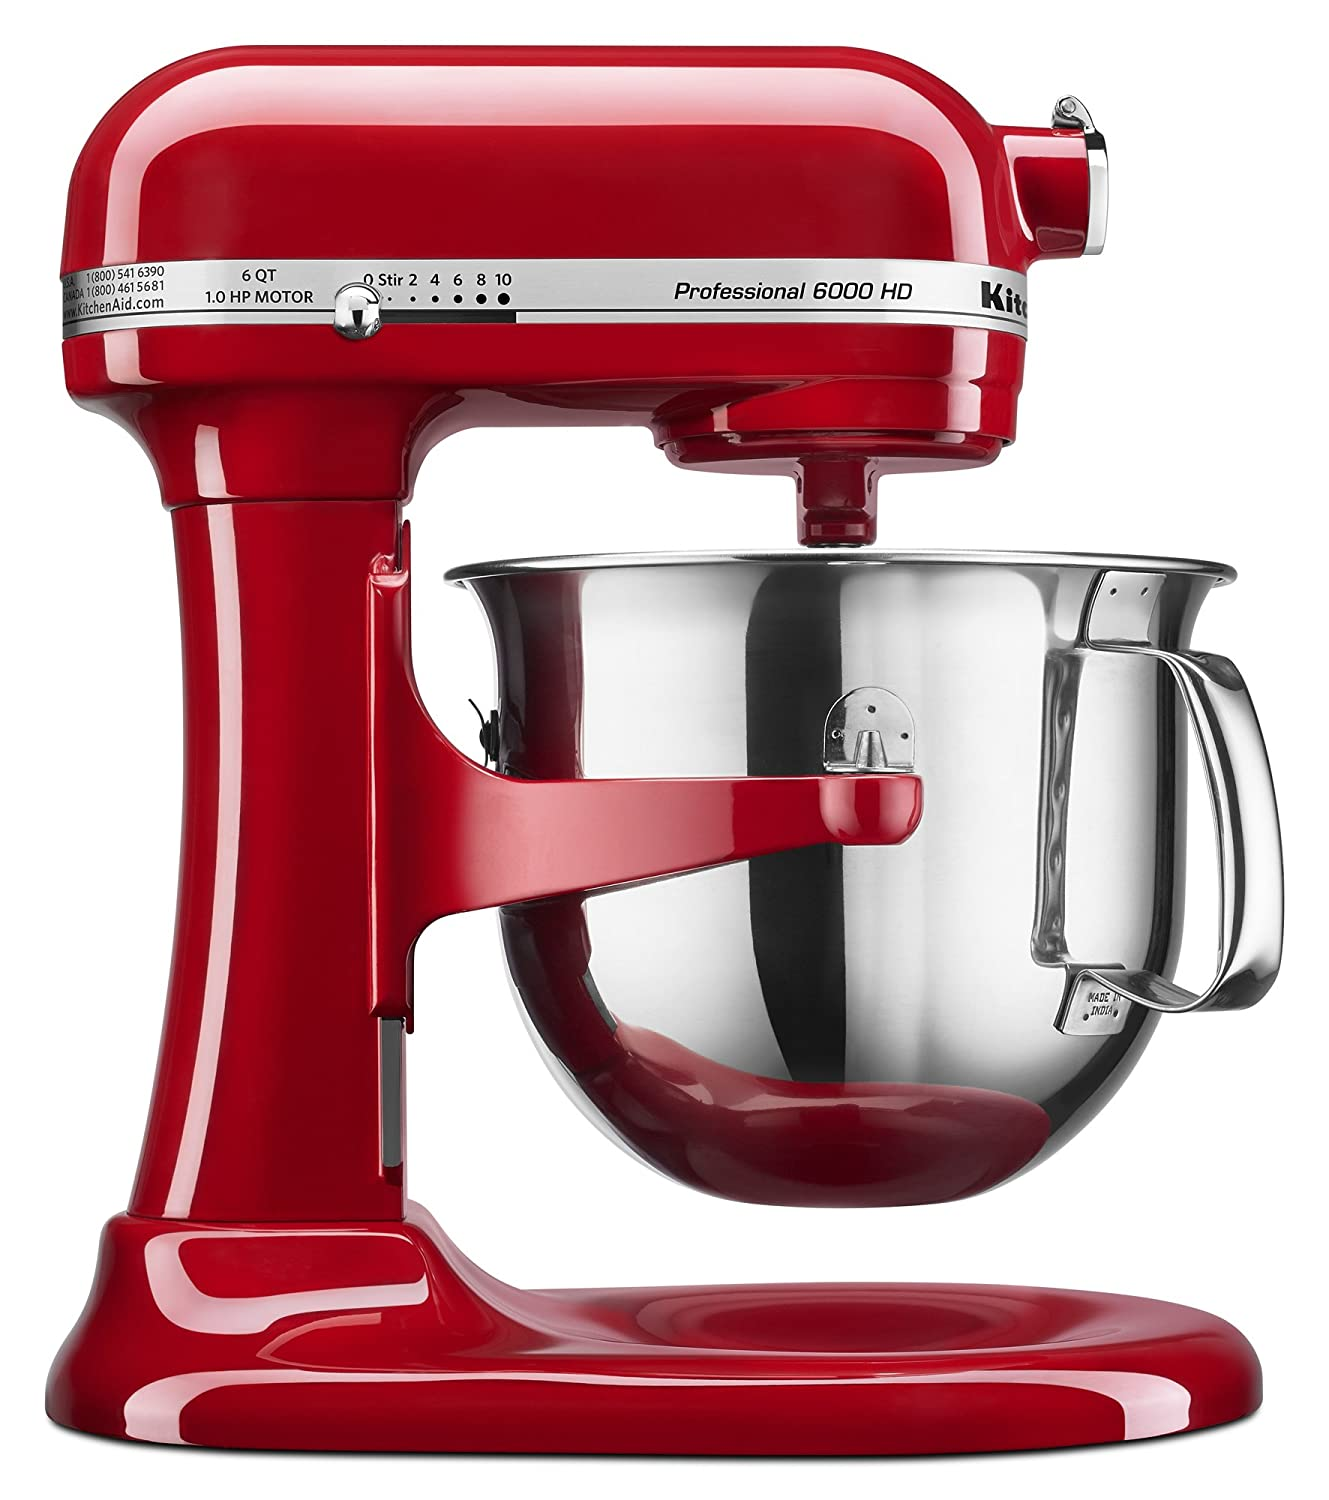 kitchenaid professional 6000 hd ksm6573cer stand mixer 6 quart